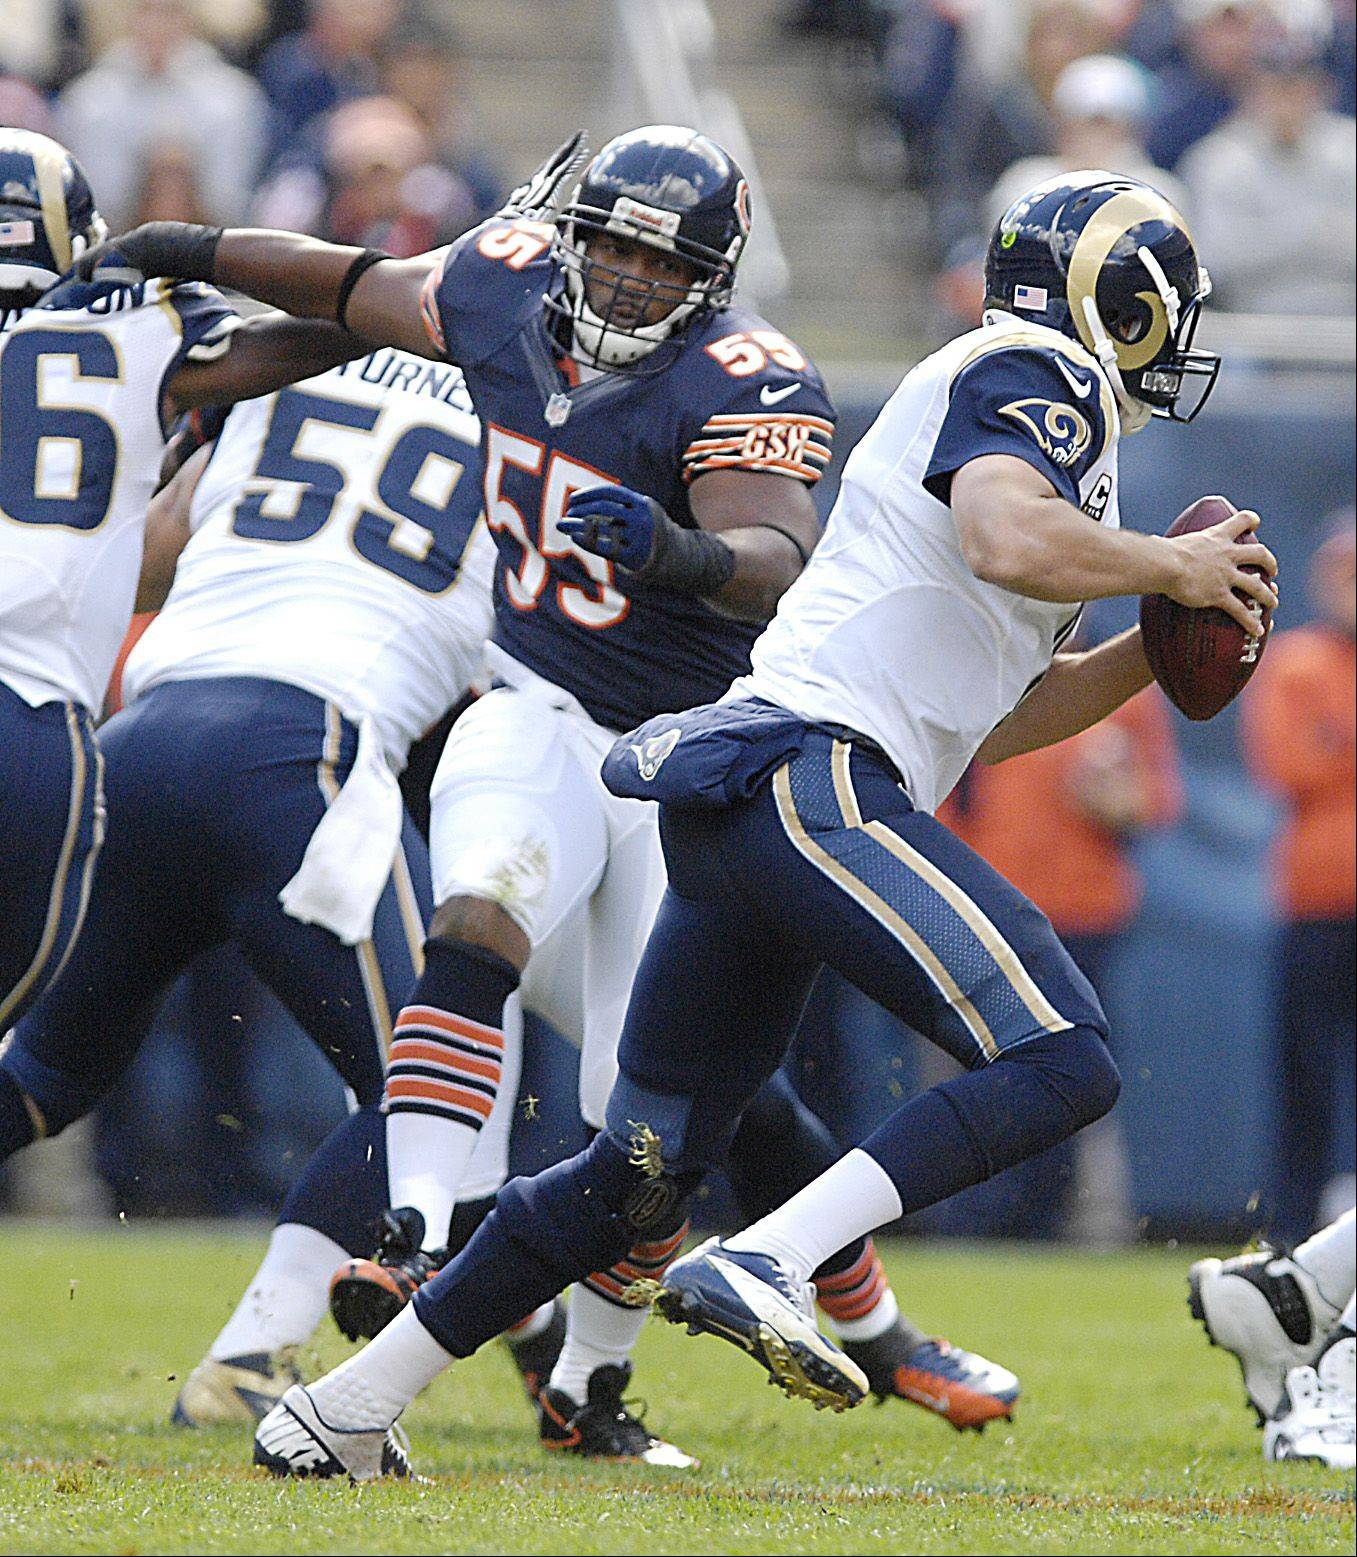 Chicago Bears outside linebacker Lance Briggs put pressure on St. Louis Rams quarterback Sam Bradford during the Bears win at Soldier Field in Chicago.